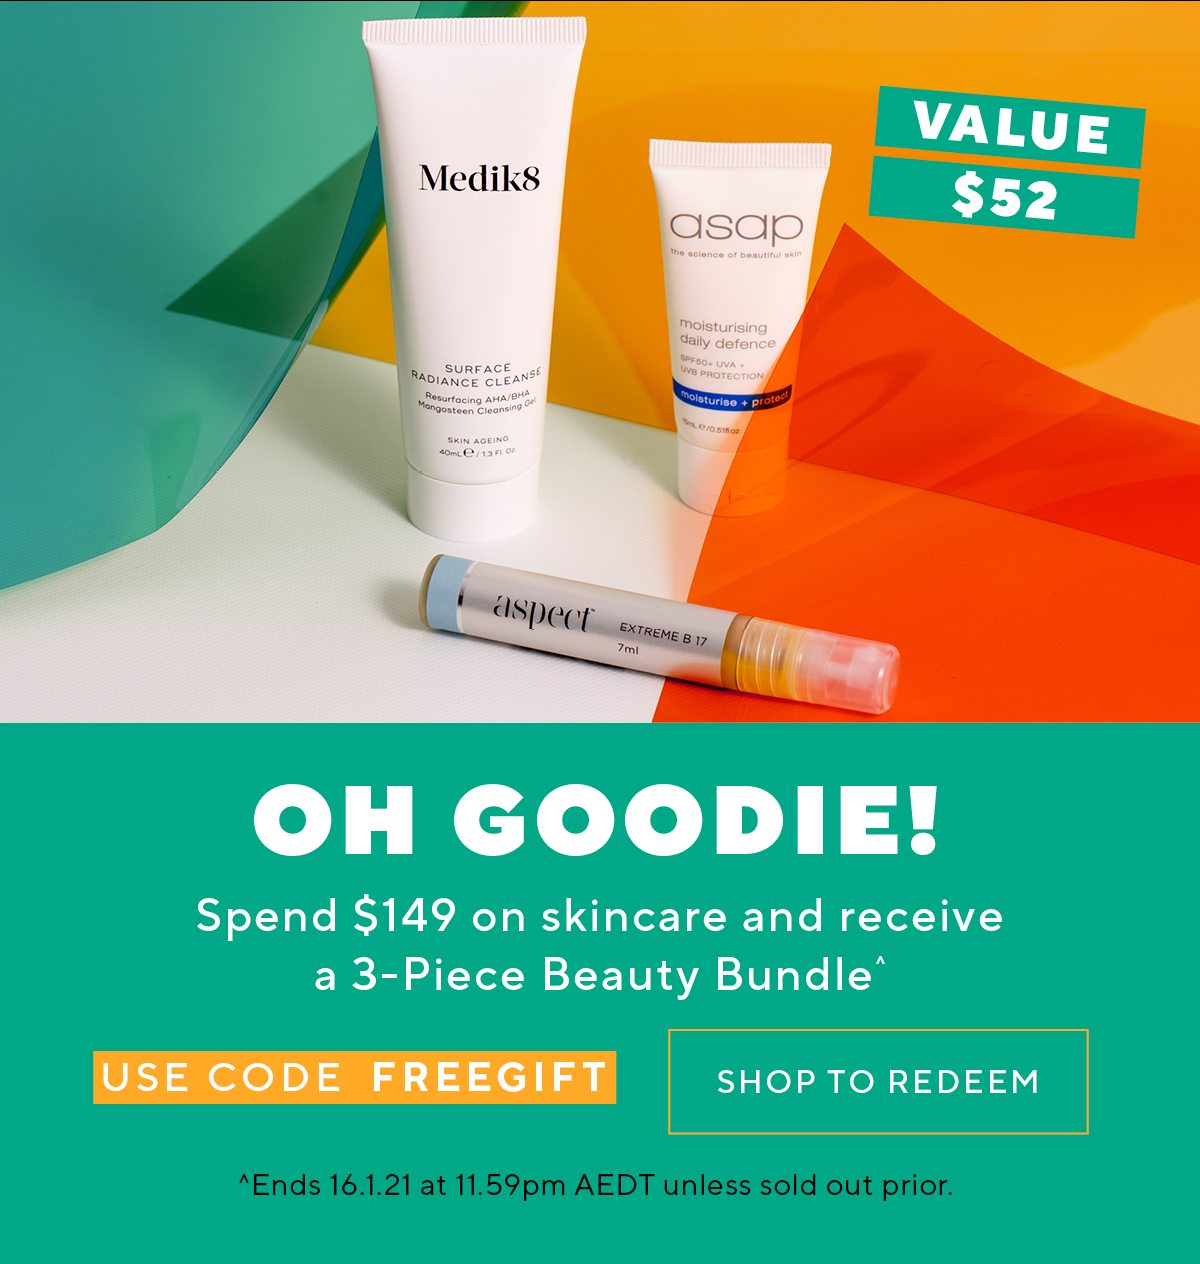 Spend $149 on skincare and receive a 3-Piece Beauty Bundle^